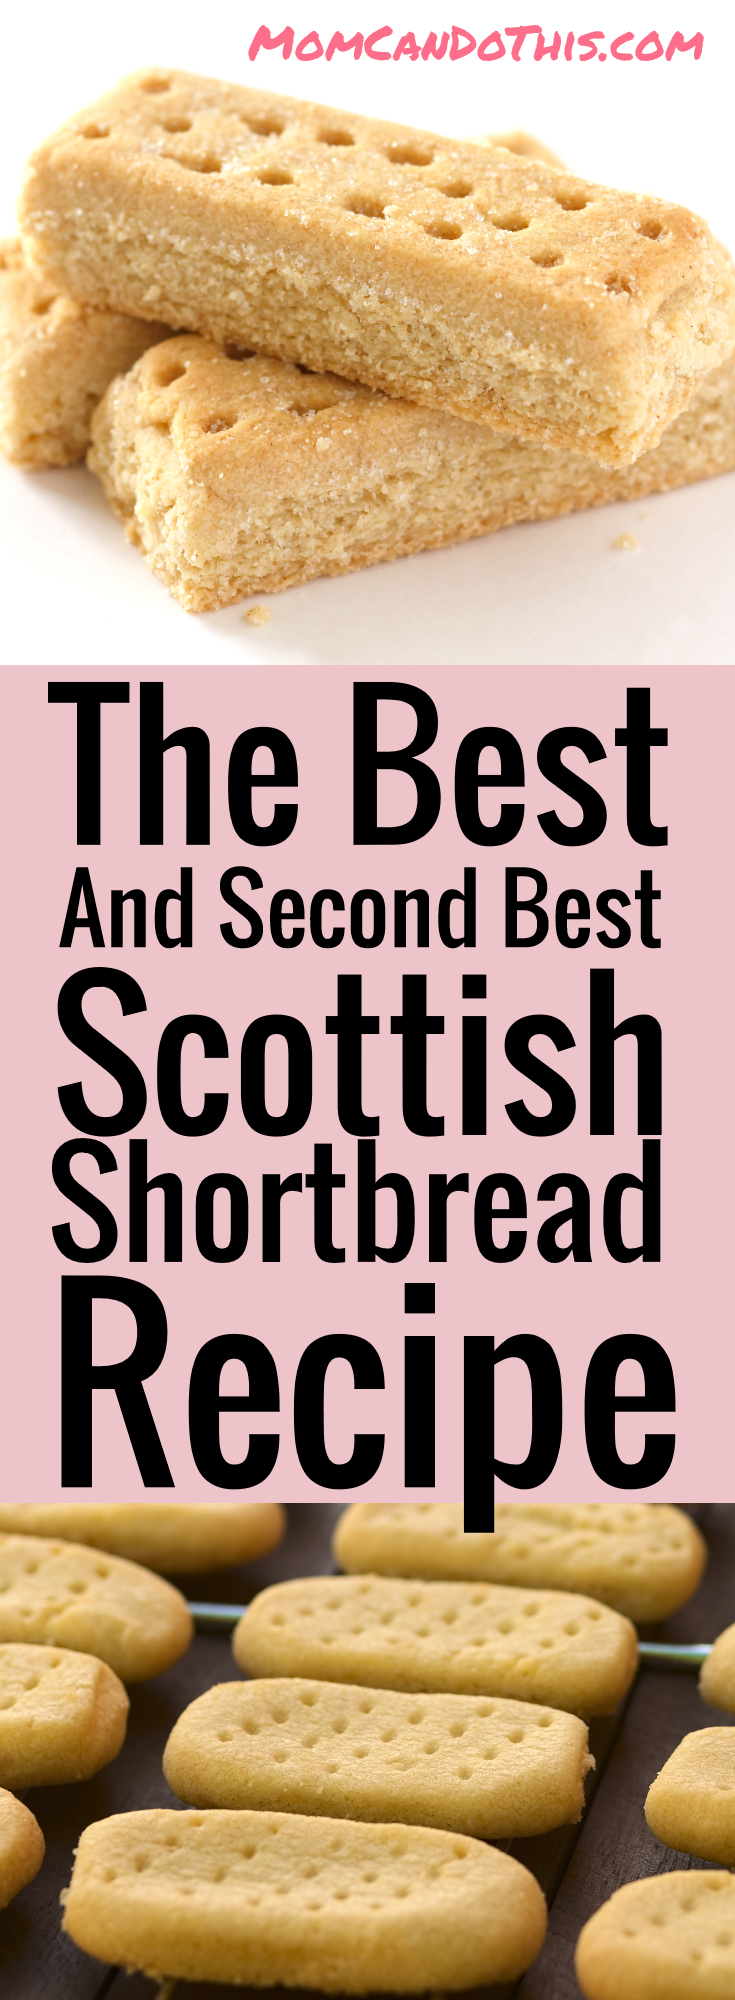 The Best and Easy Scottish Shortbread Recipe! Click through and print the recipe for free!